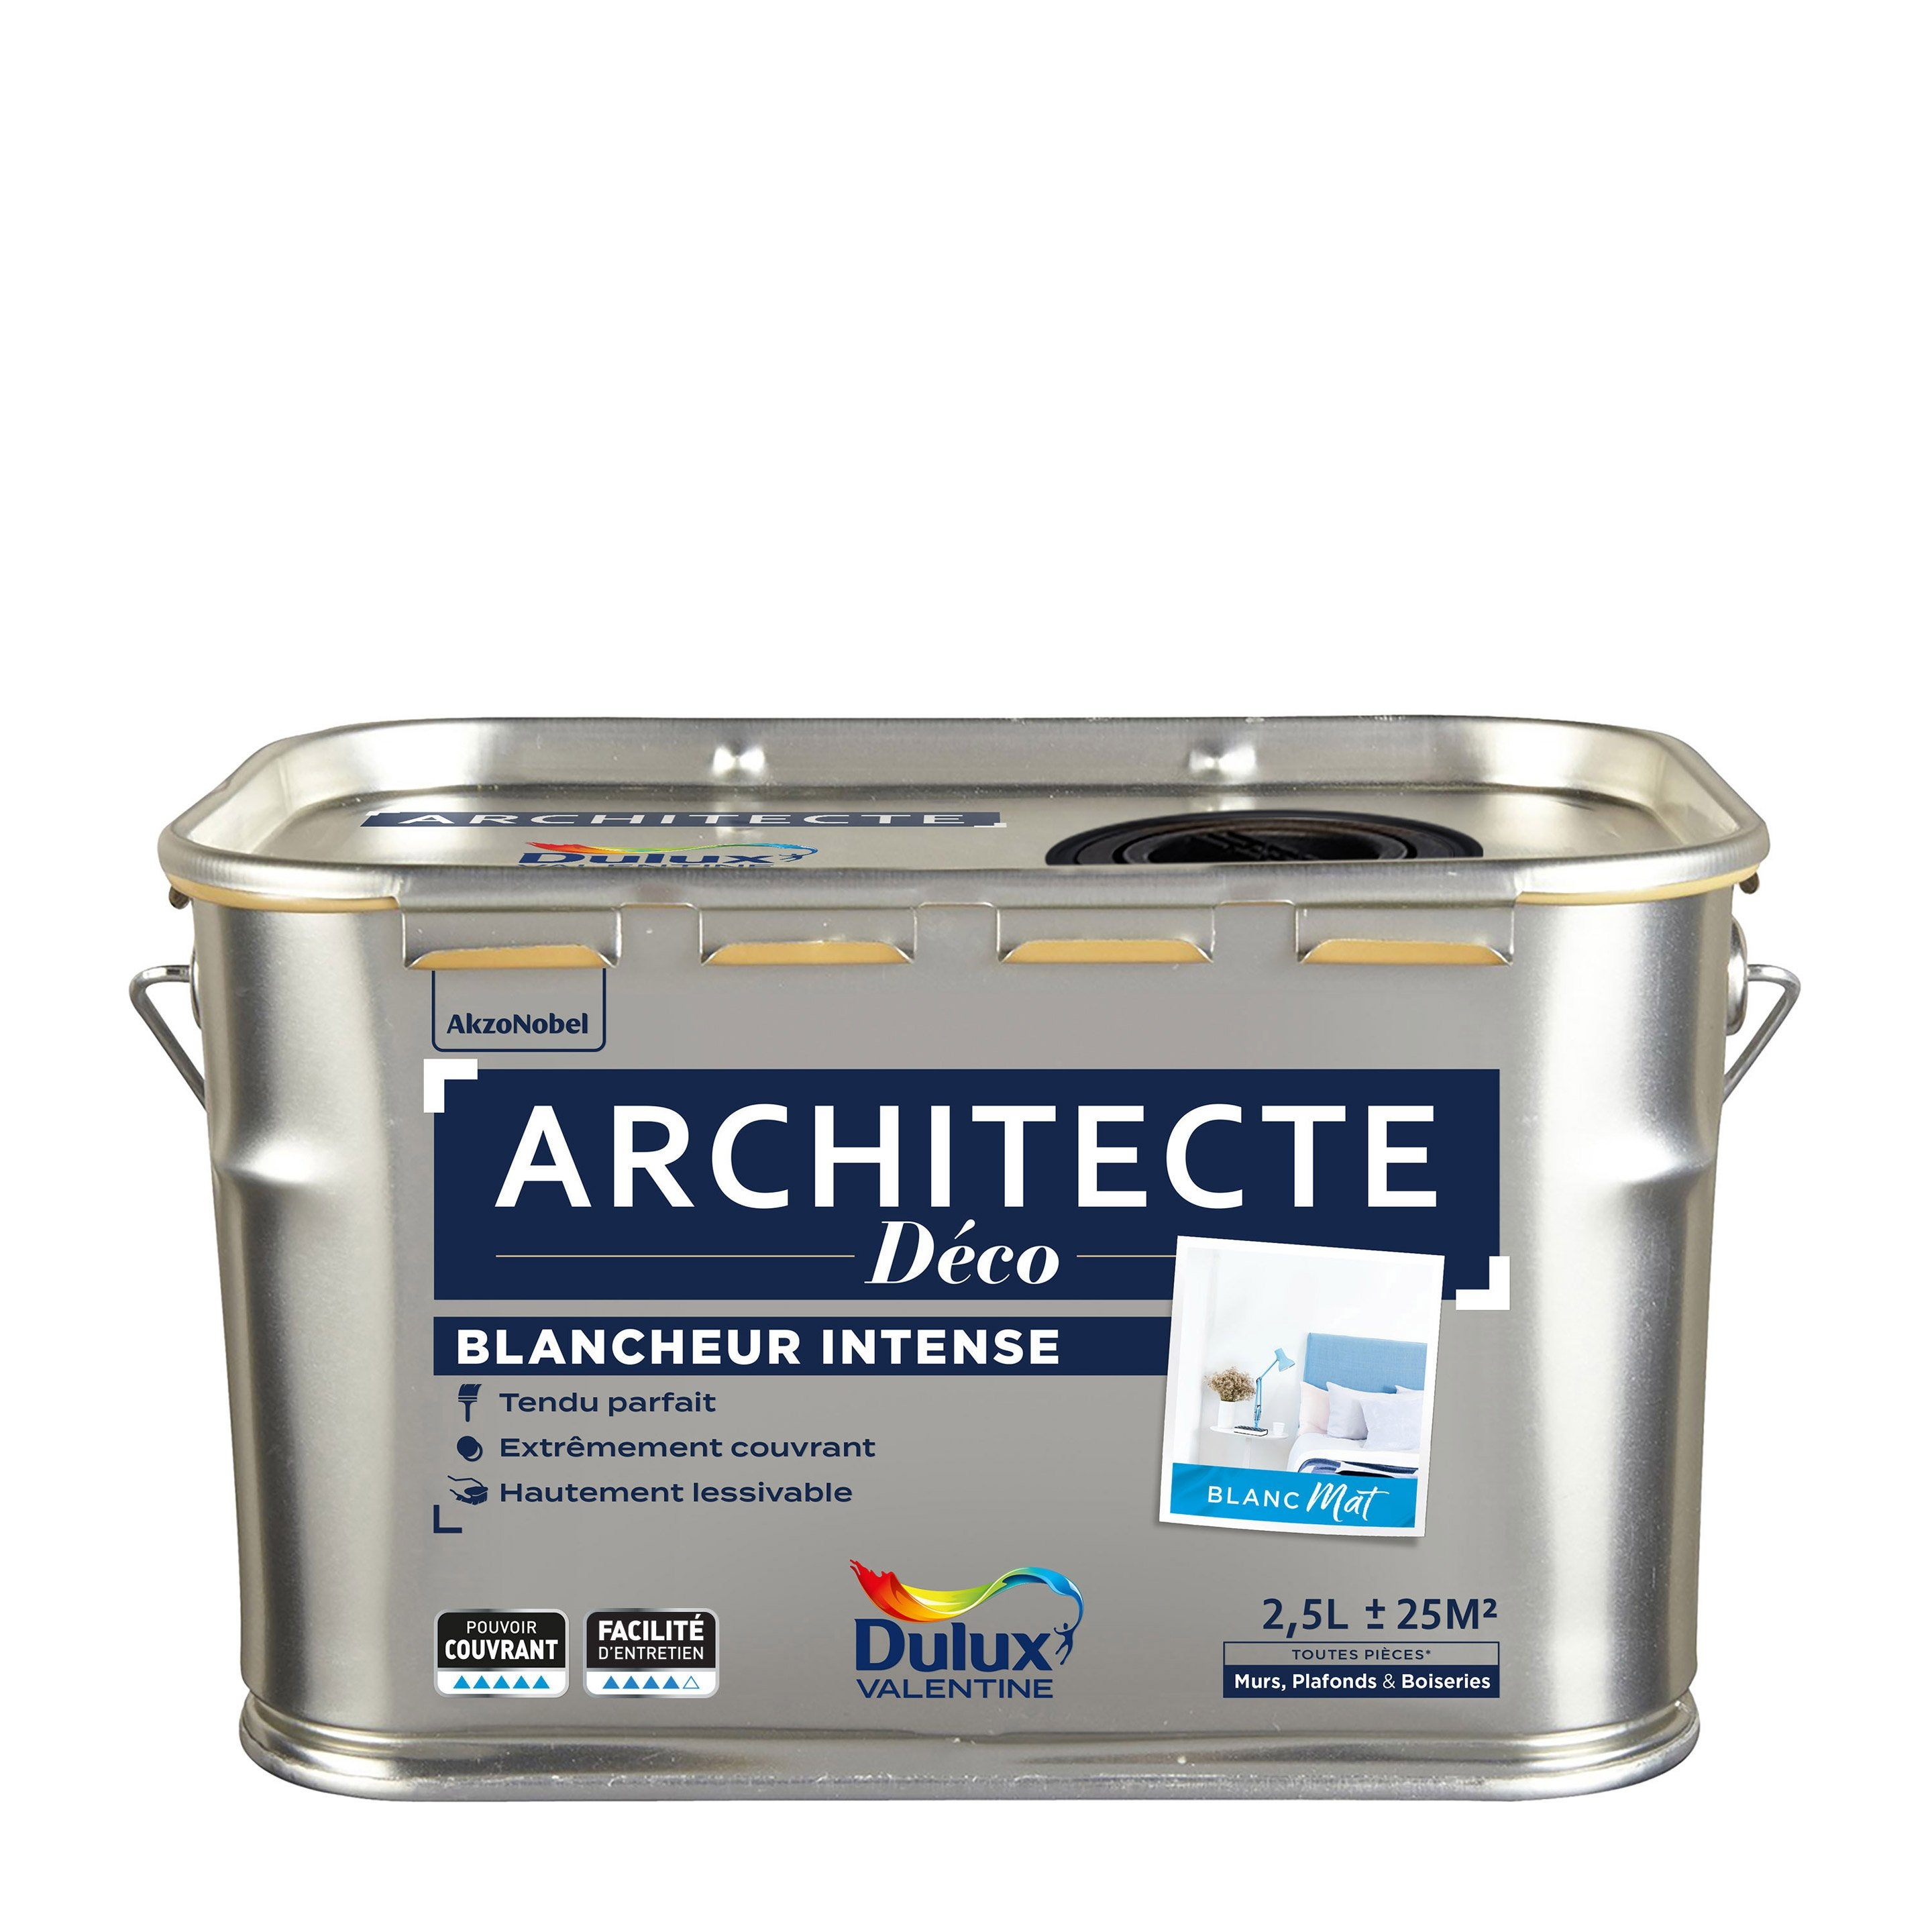 100 Incroyable Concepts Dulux Valentine Architecte Blanc Mat